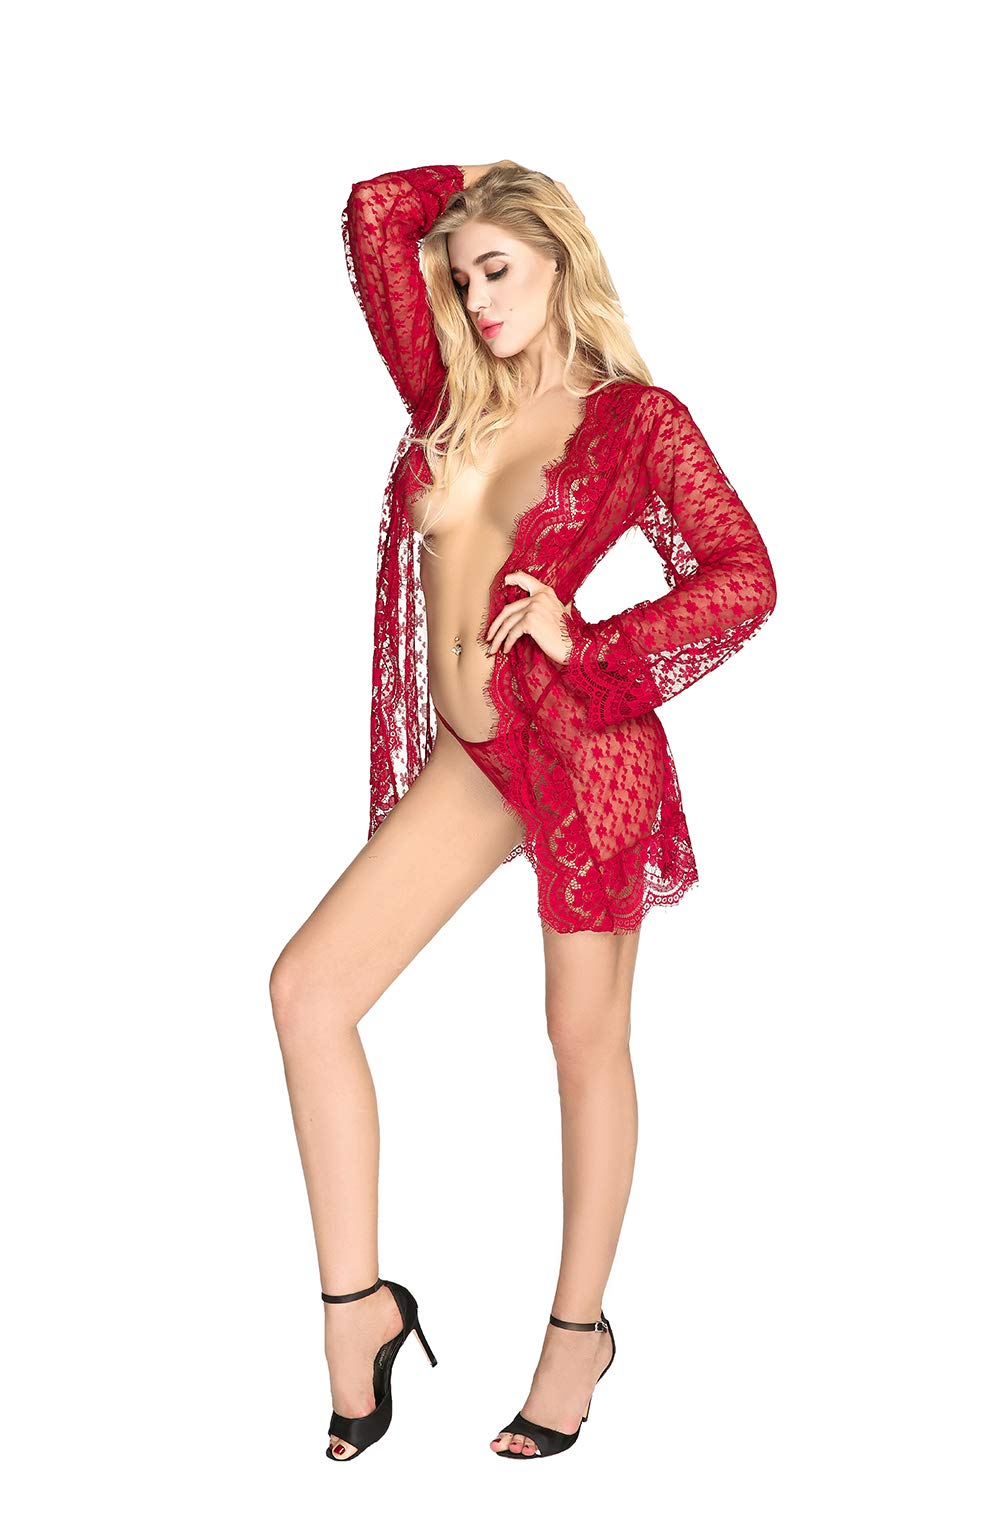 QUEEN MOON Babydolls Sexy Lingerie for Women for Sex Long Sleeve Lace Lingerie Set Exotic Lingerie Robe by QUEEN MOON (Image #7)